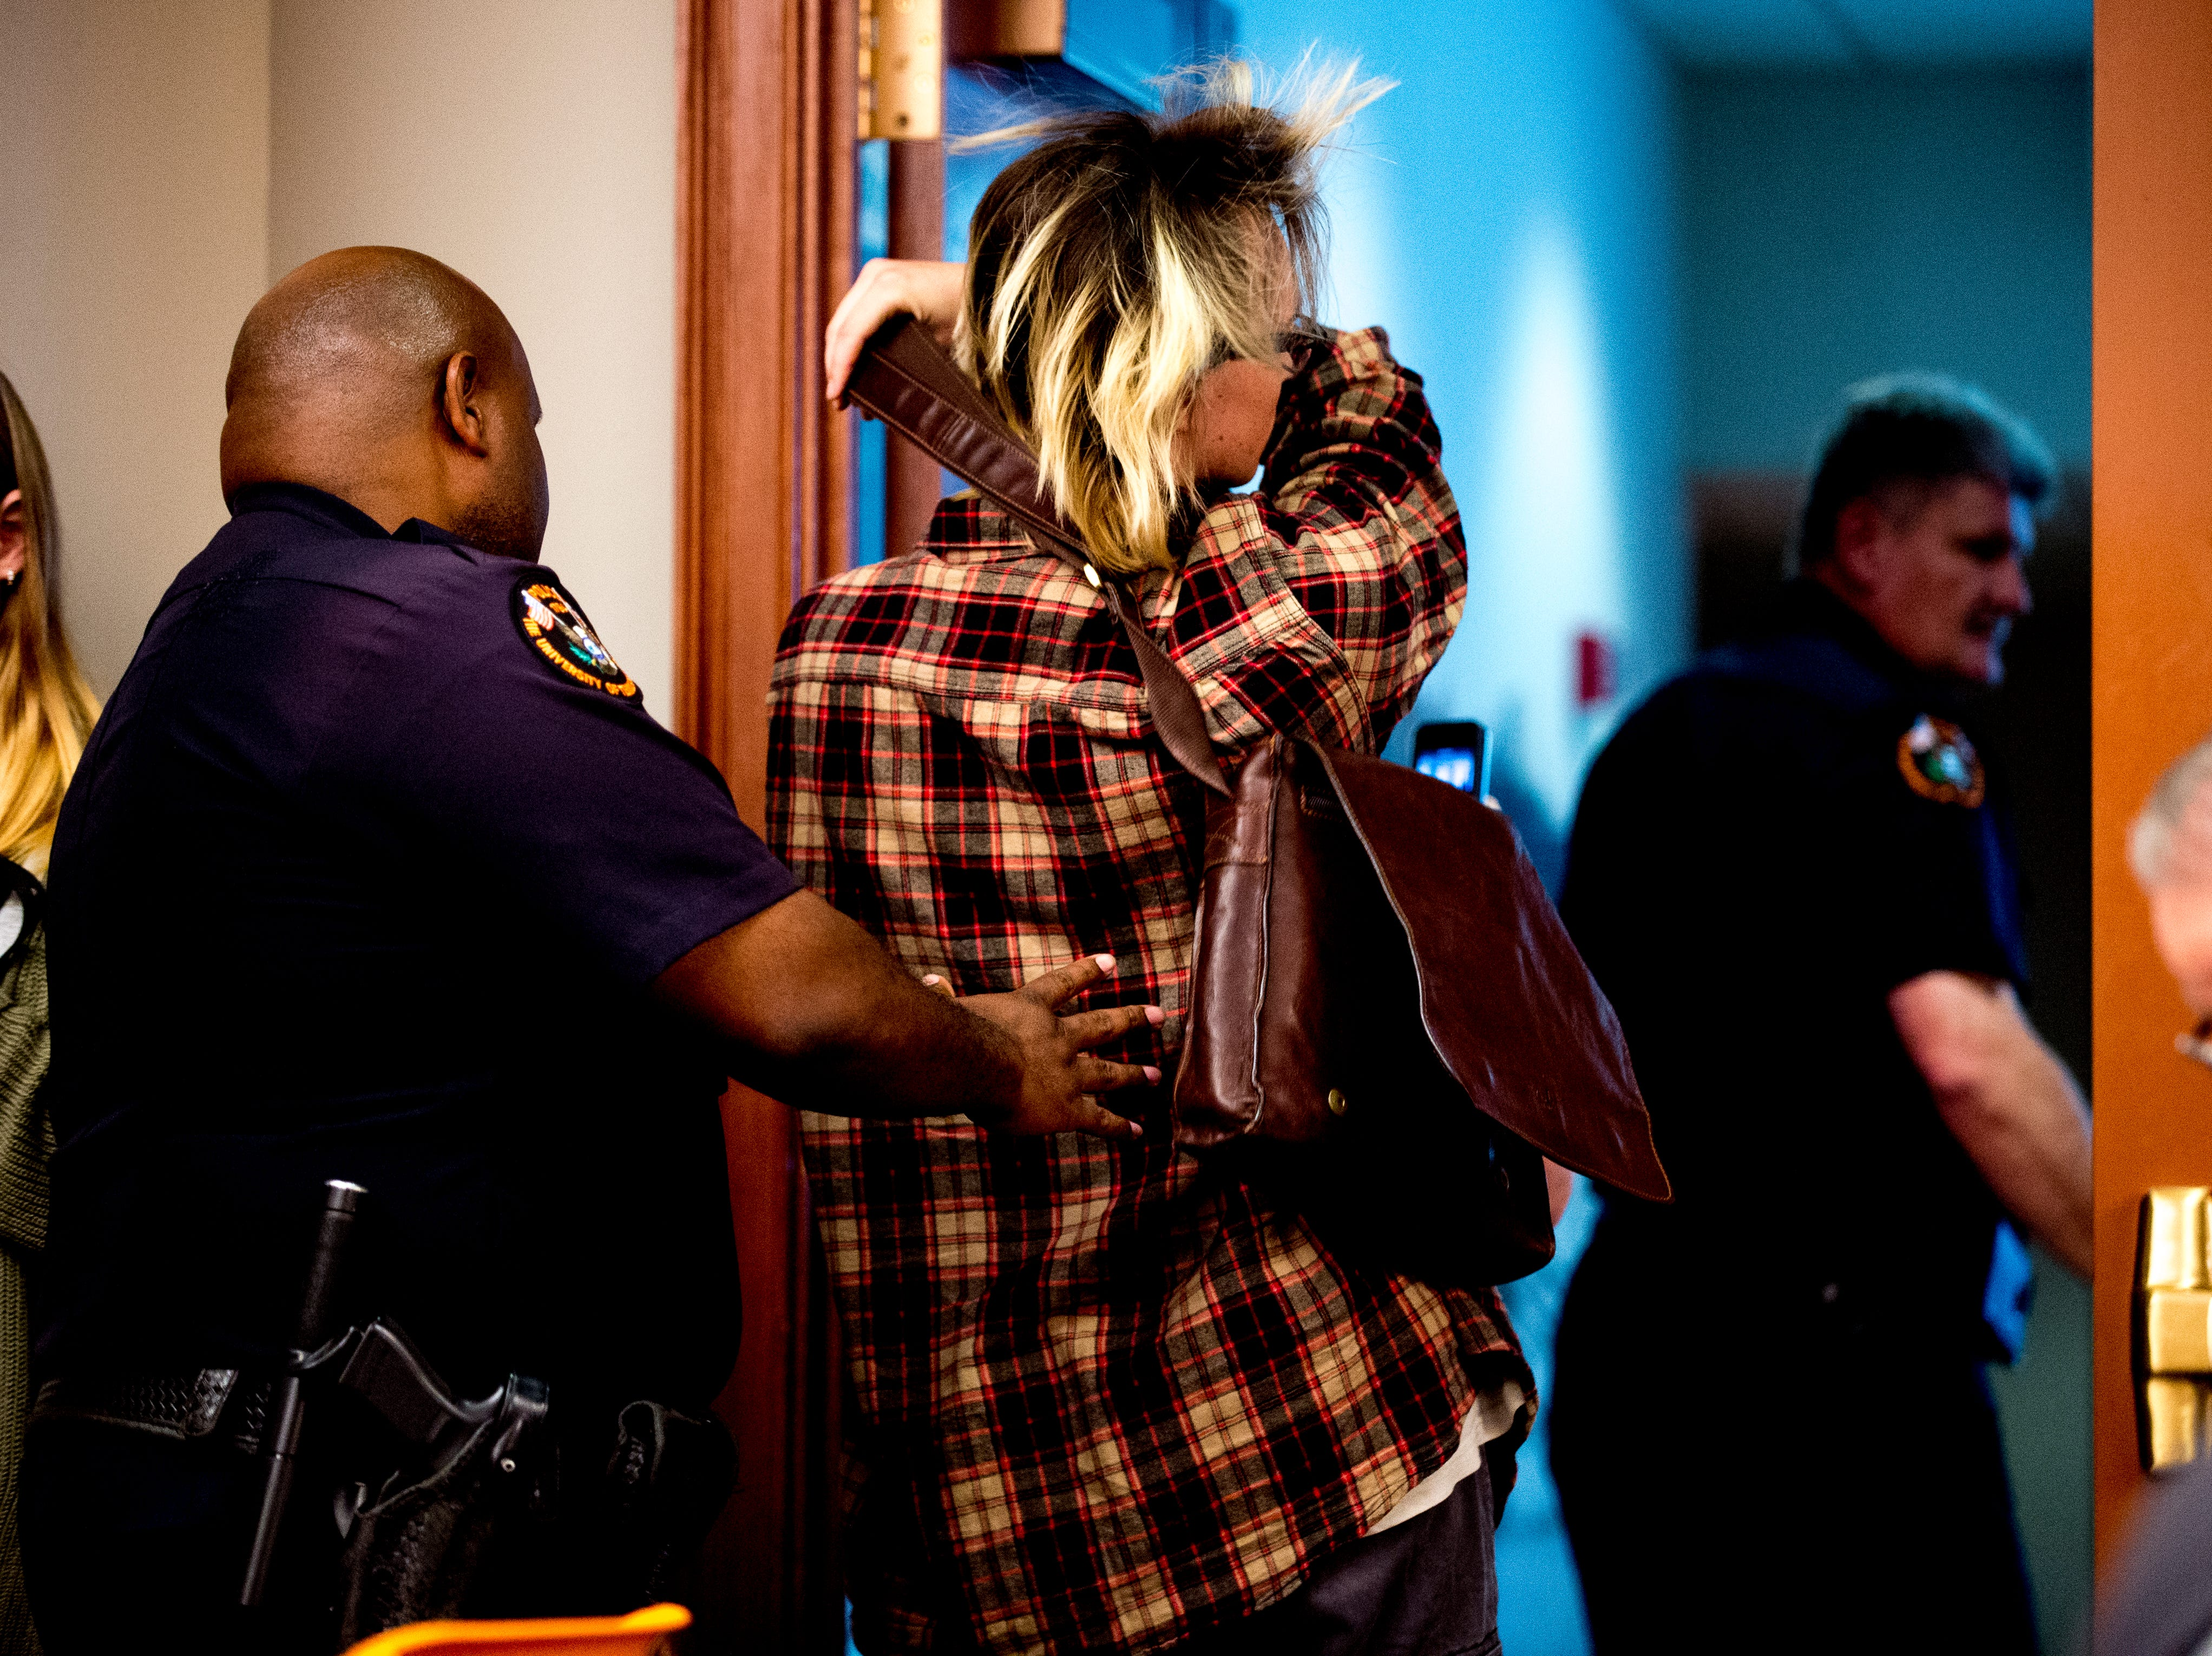 A protestor is escorted out of the room by UTK police officers after interrupting the proceedings during a University of Tennessee Board of Trustees meeting at the UTK Visitor's Center in Knoxville, Tennessee on Tuesday, September 25, 2018. The board met to discuss several topics including the installment of an interim president.